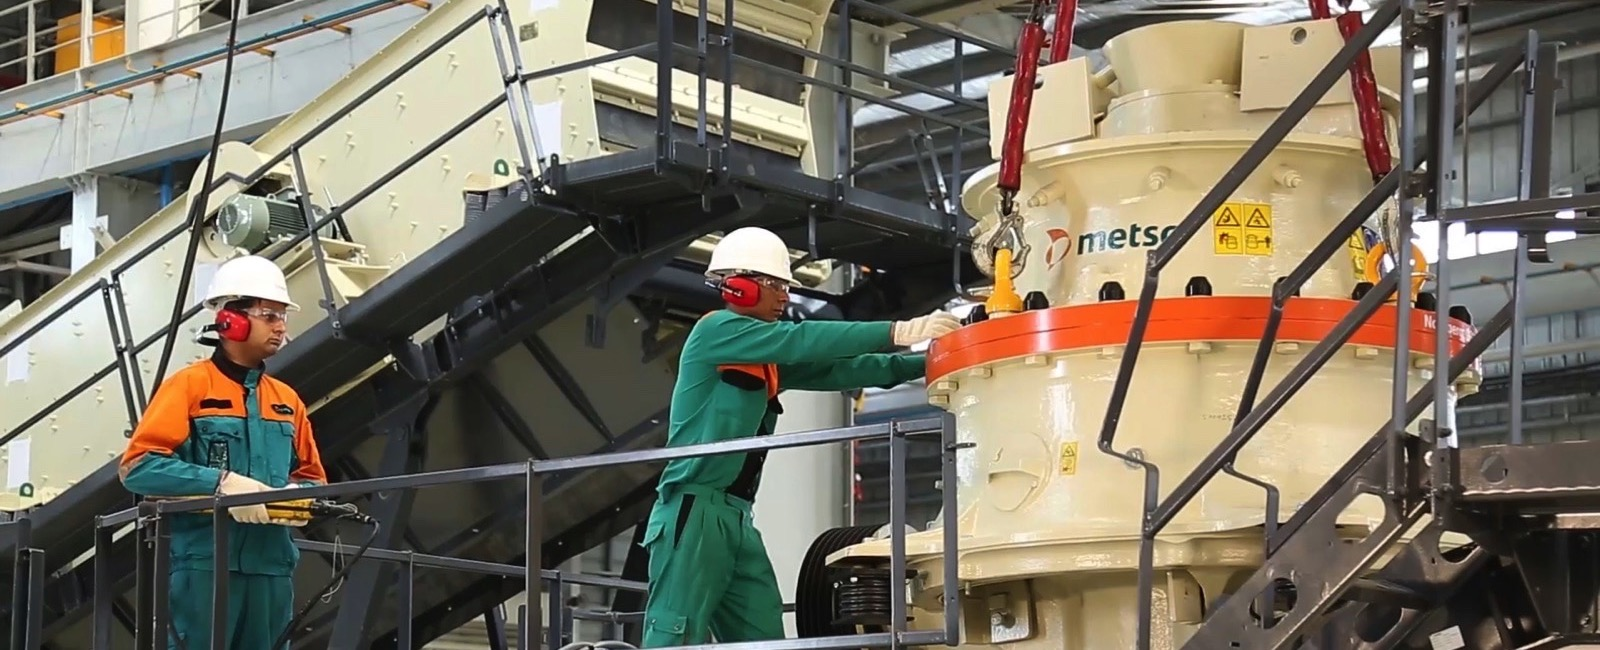 Metso adds Production Capacity in India to meet the Demand for Aggregates Equipment